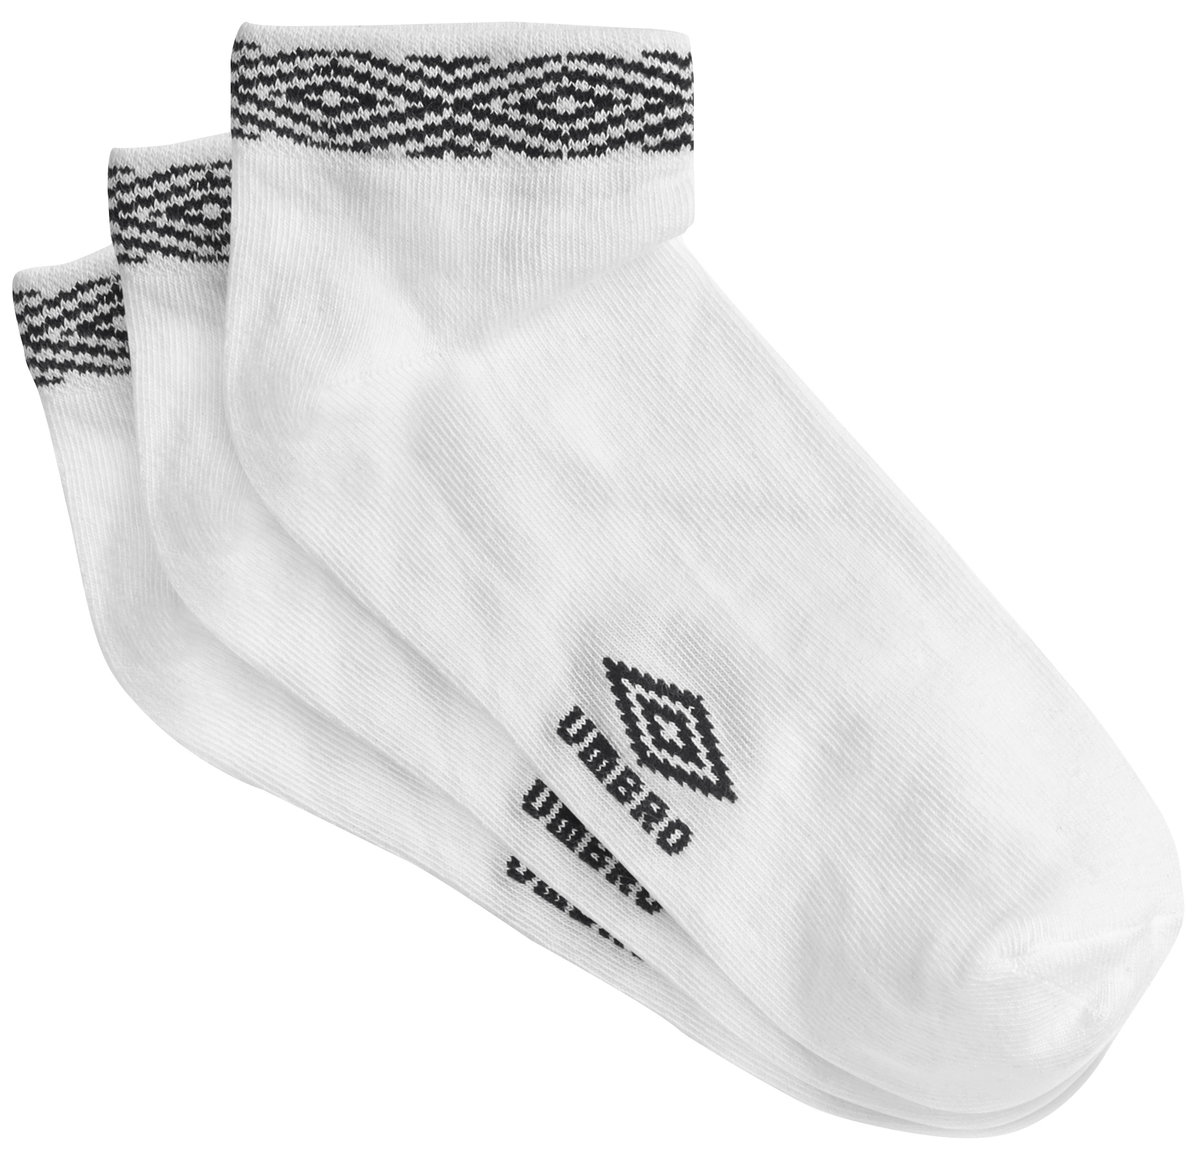 8d985a2200d0 TRAINER LINER SOCKS 3 PACK - Sale - Umbro